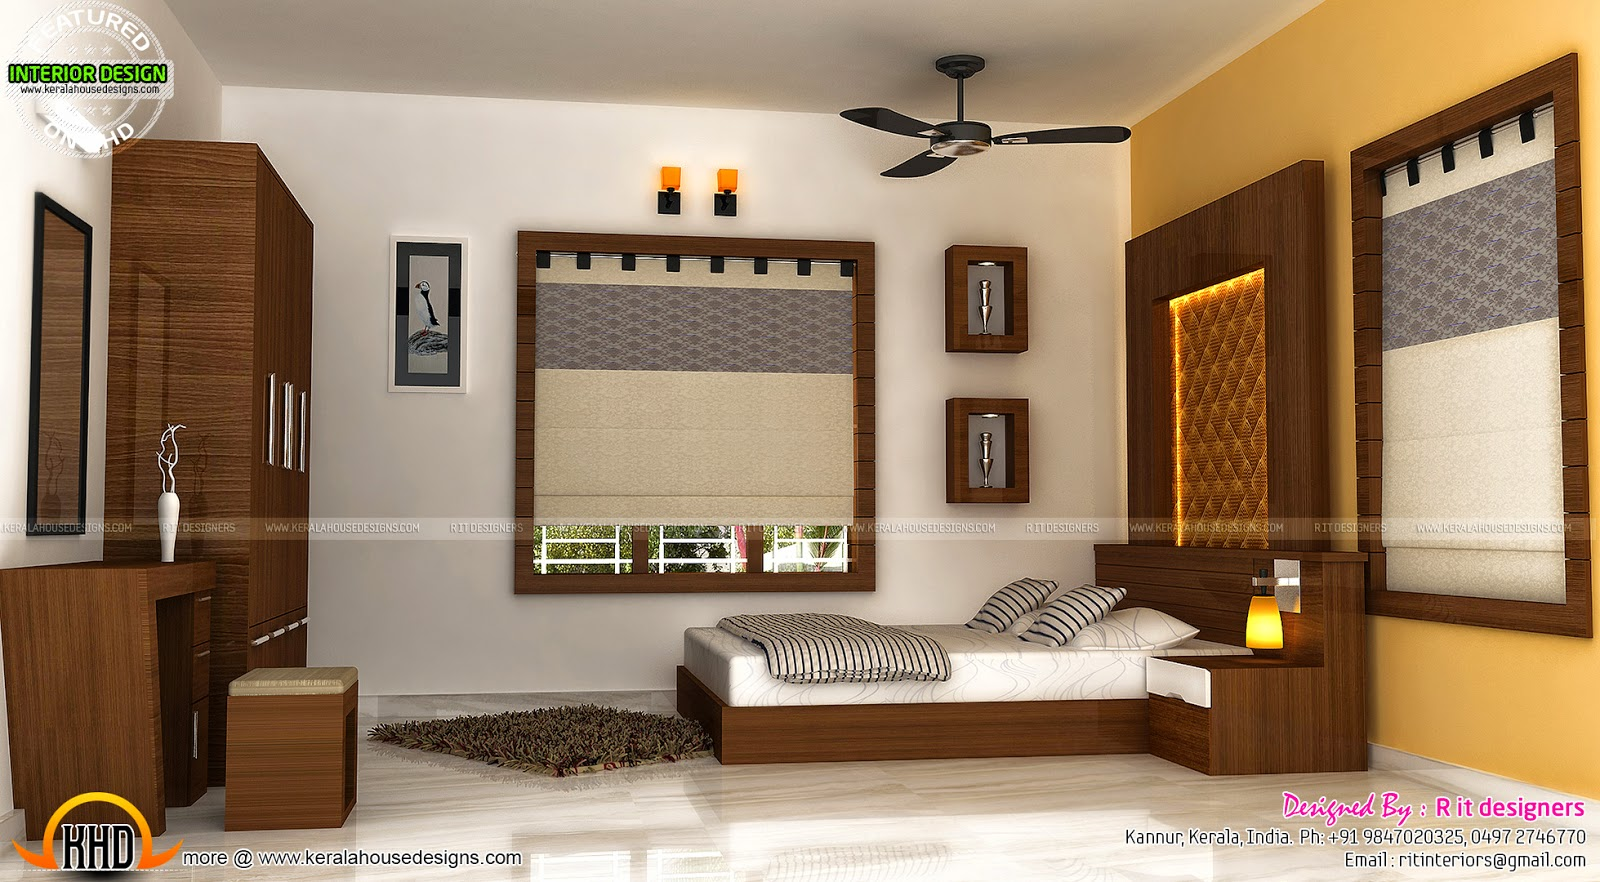 Staircase bedroom dining interiors kerala home design for Home style interior design apk